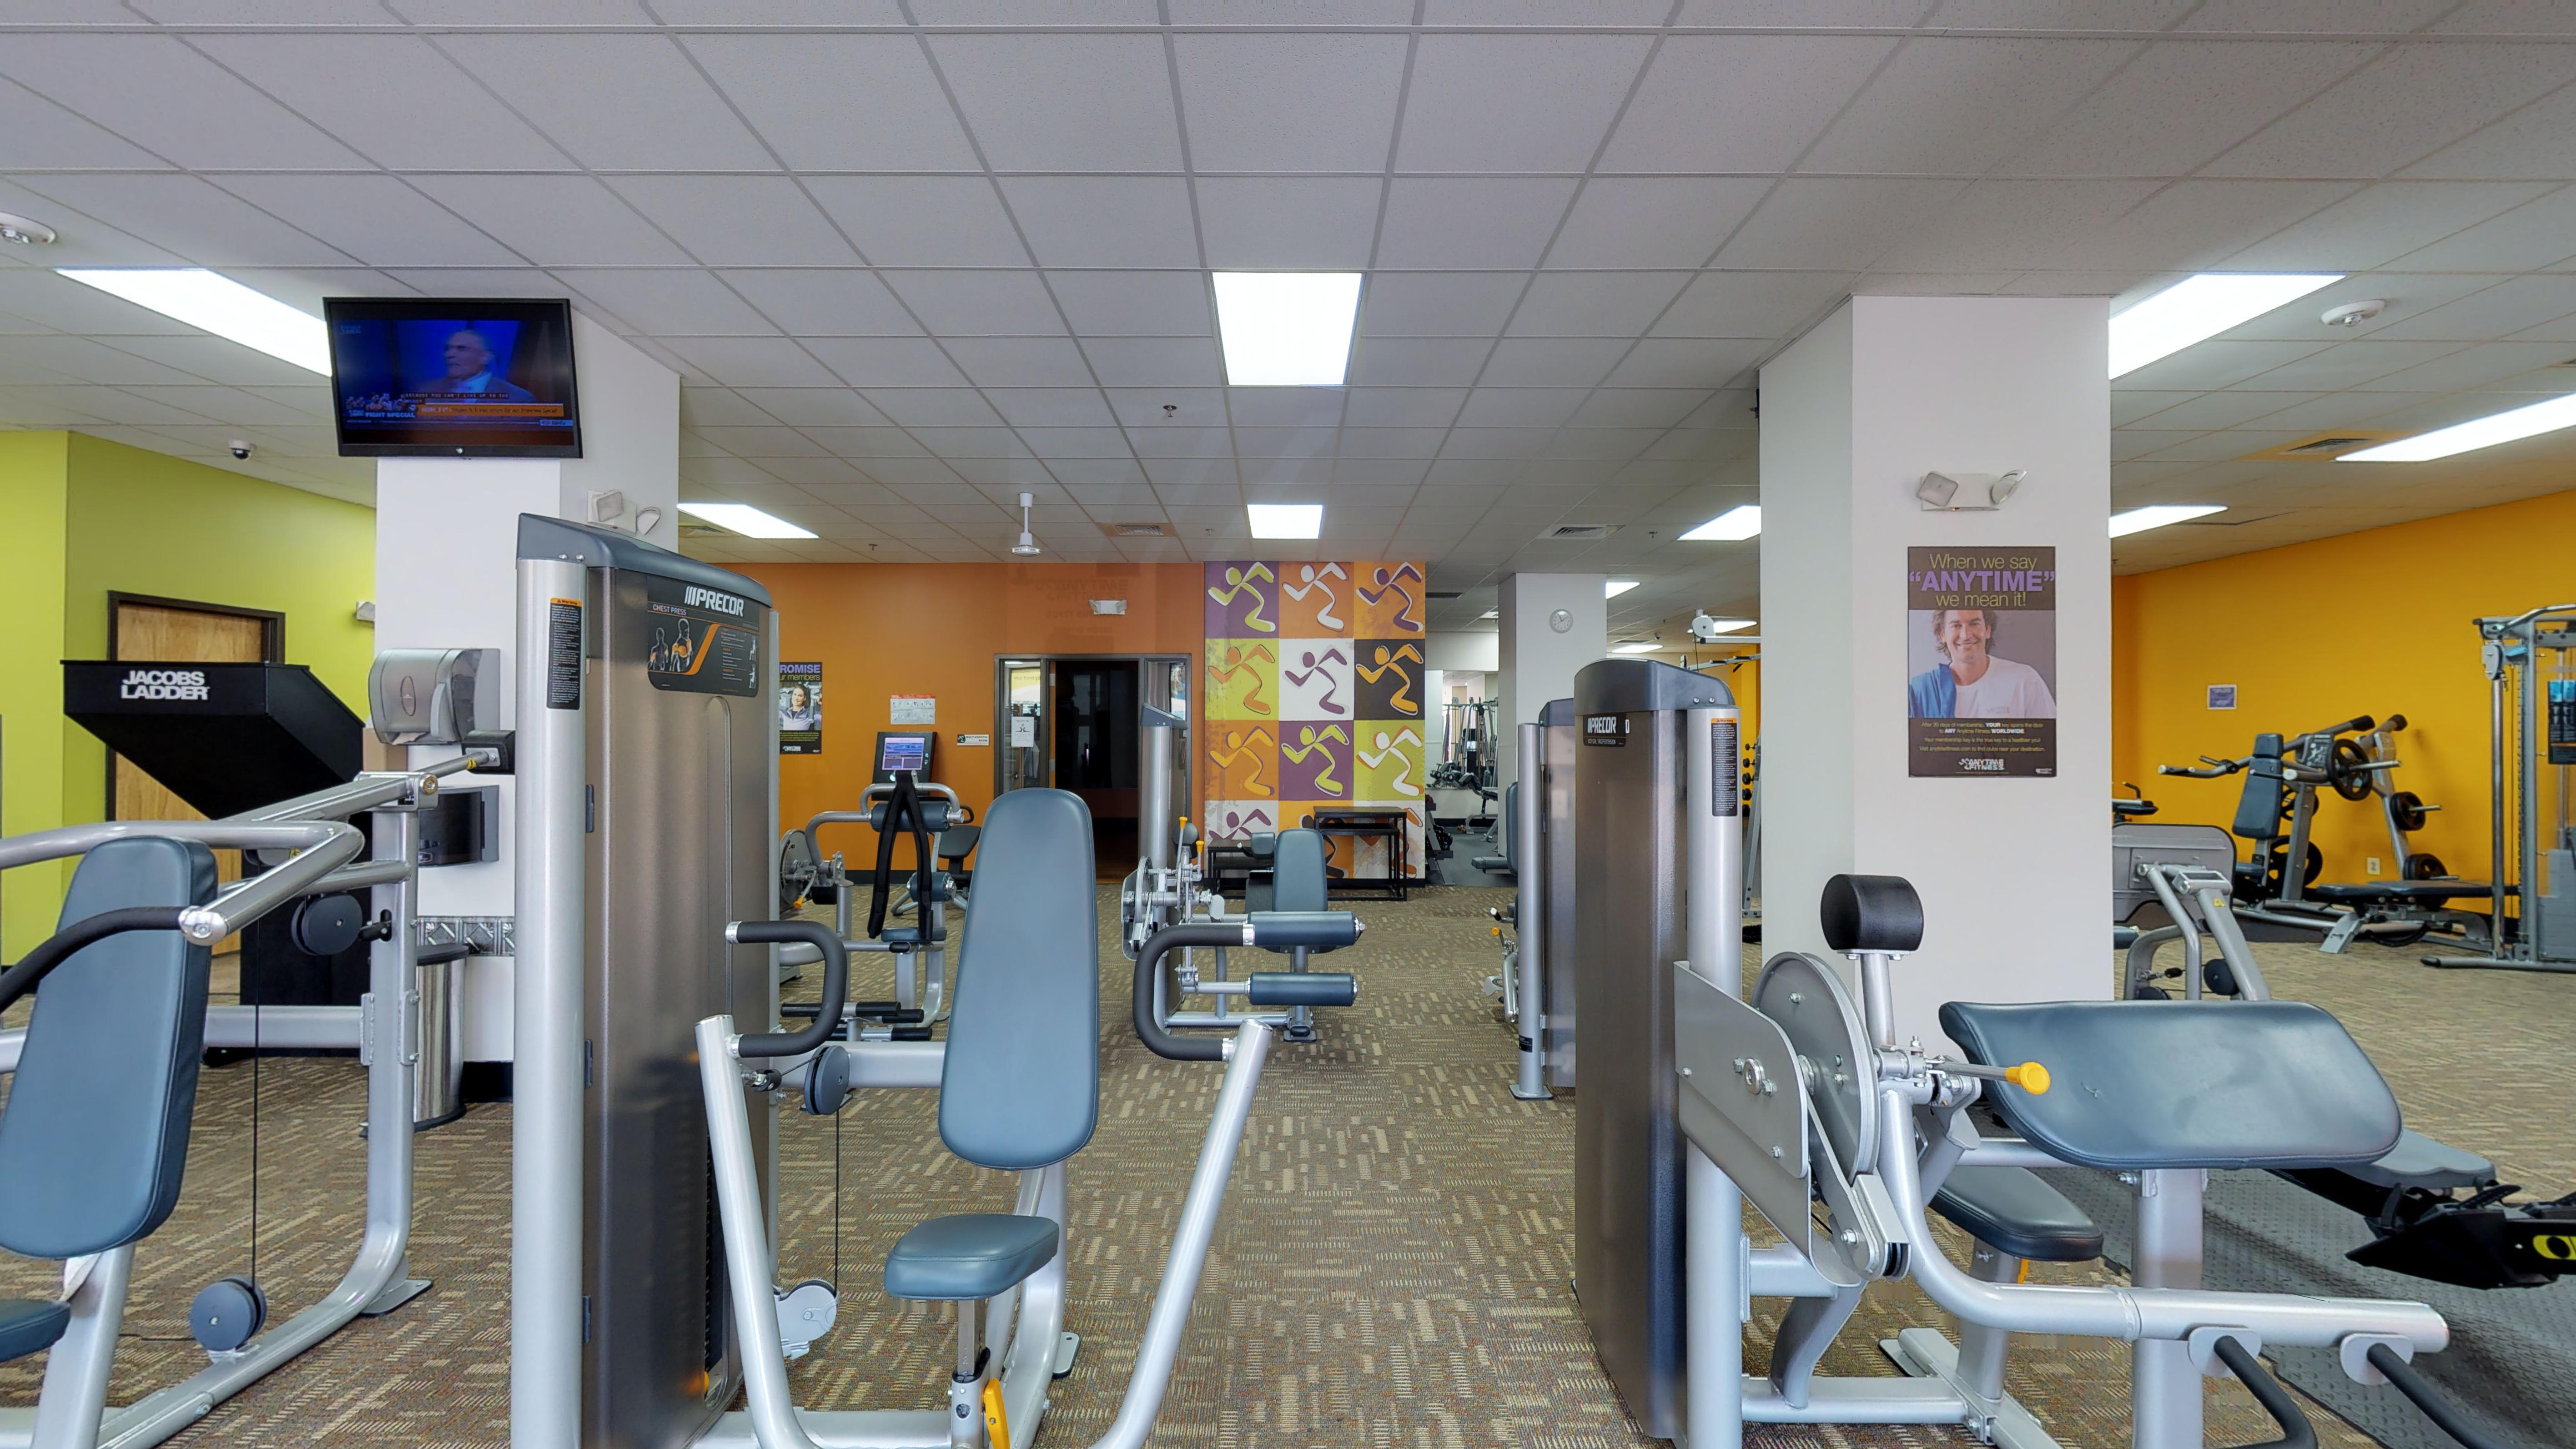 [Pro2] Anytime Fitness Jessup